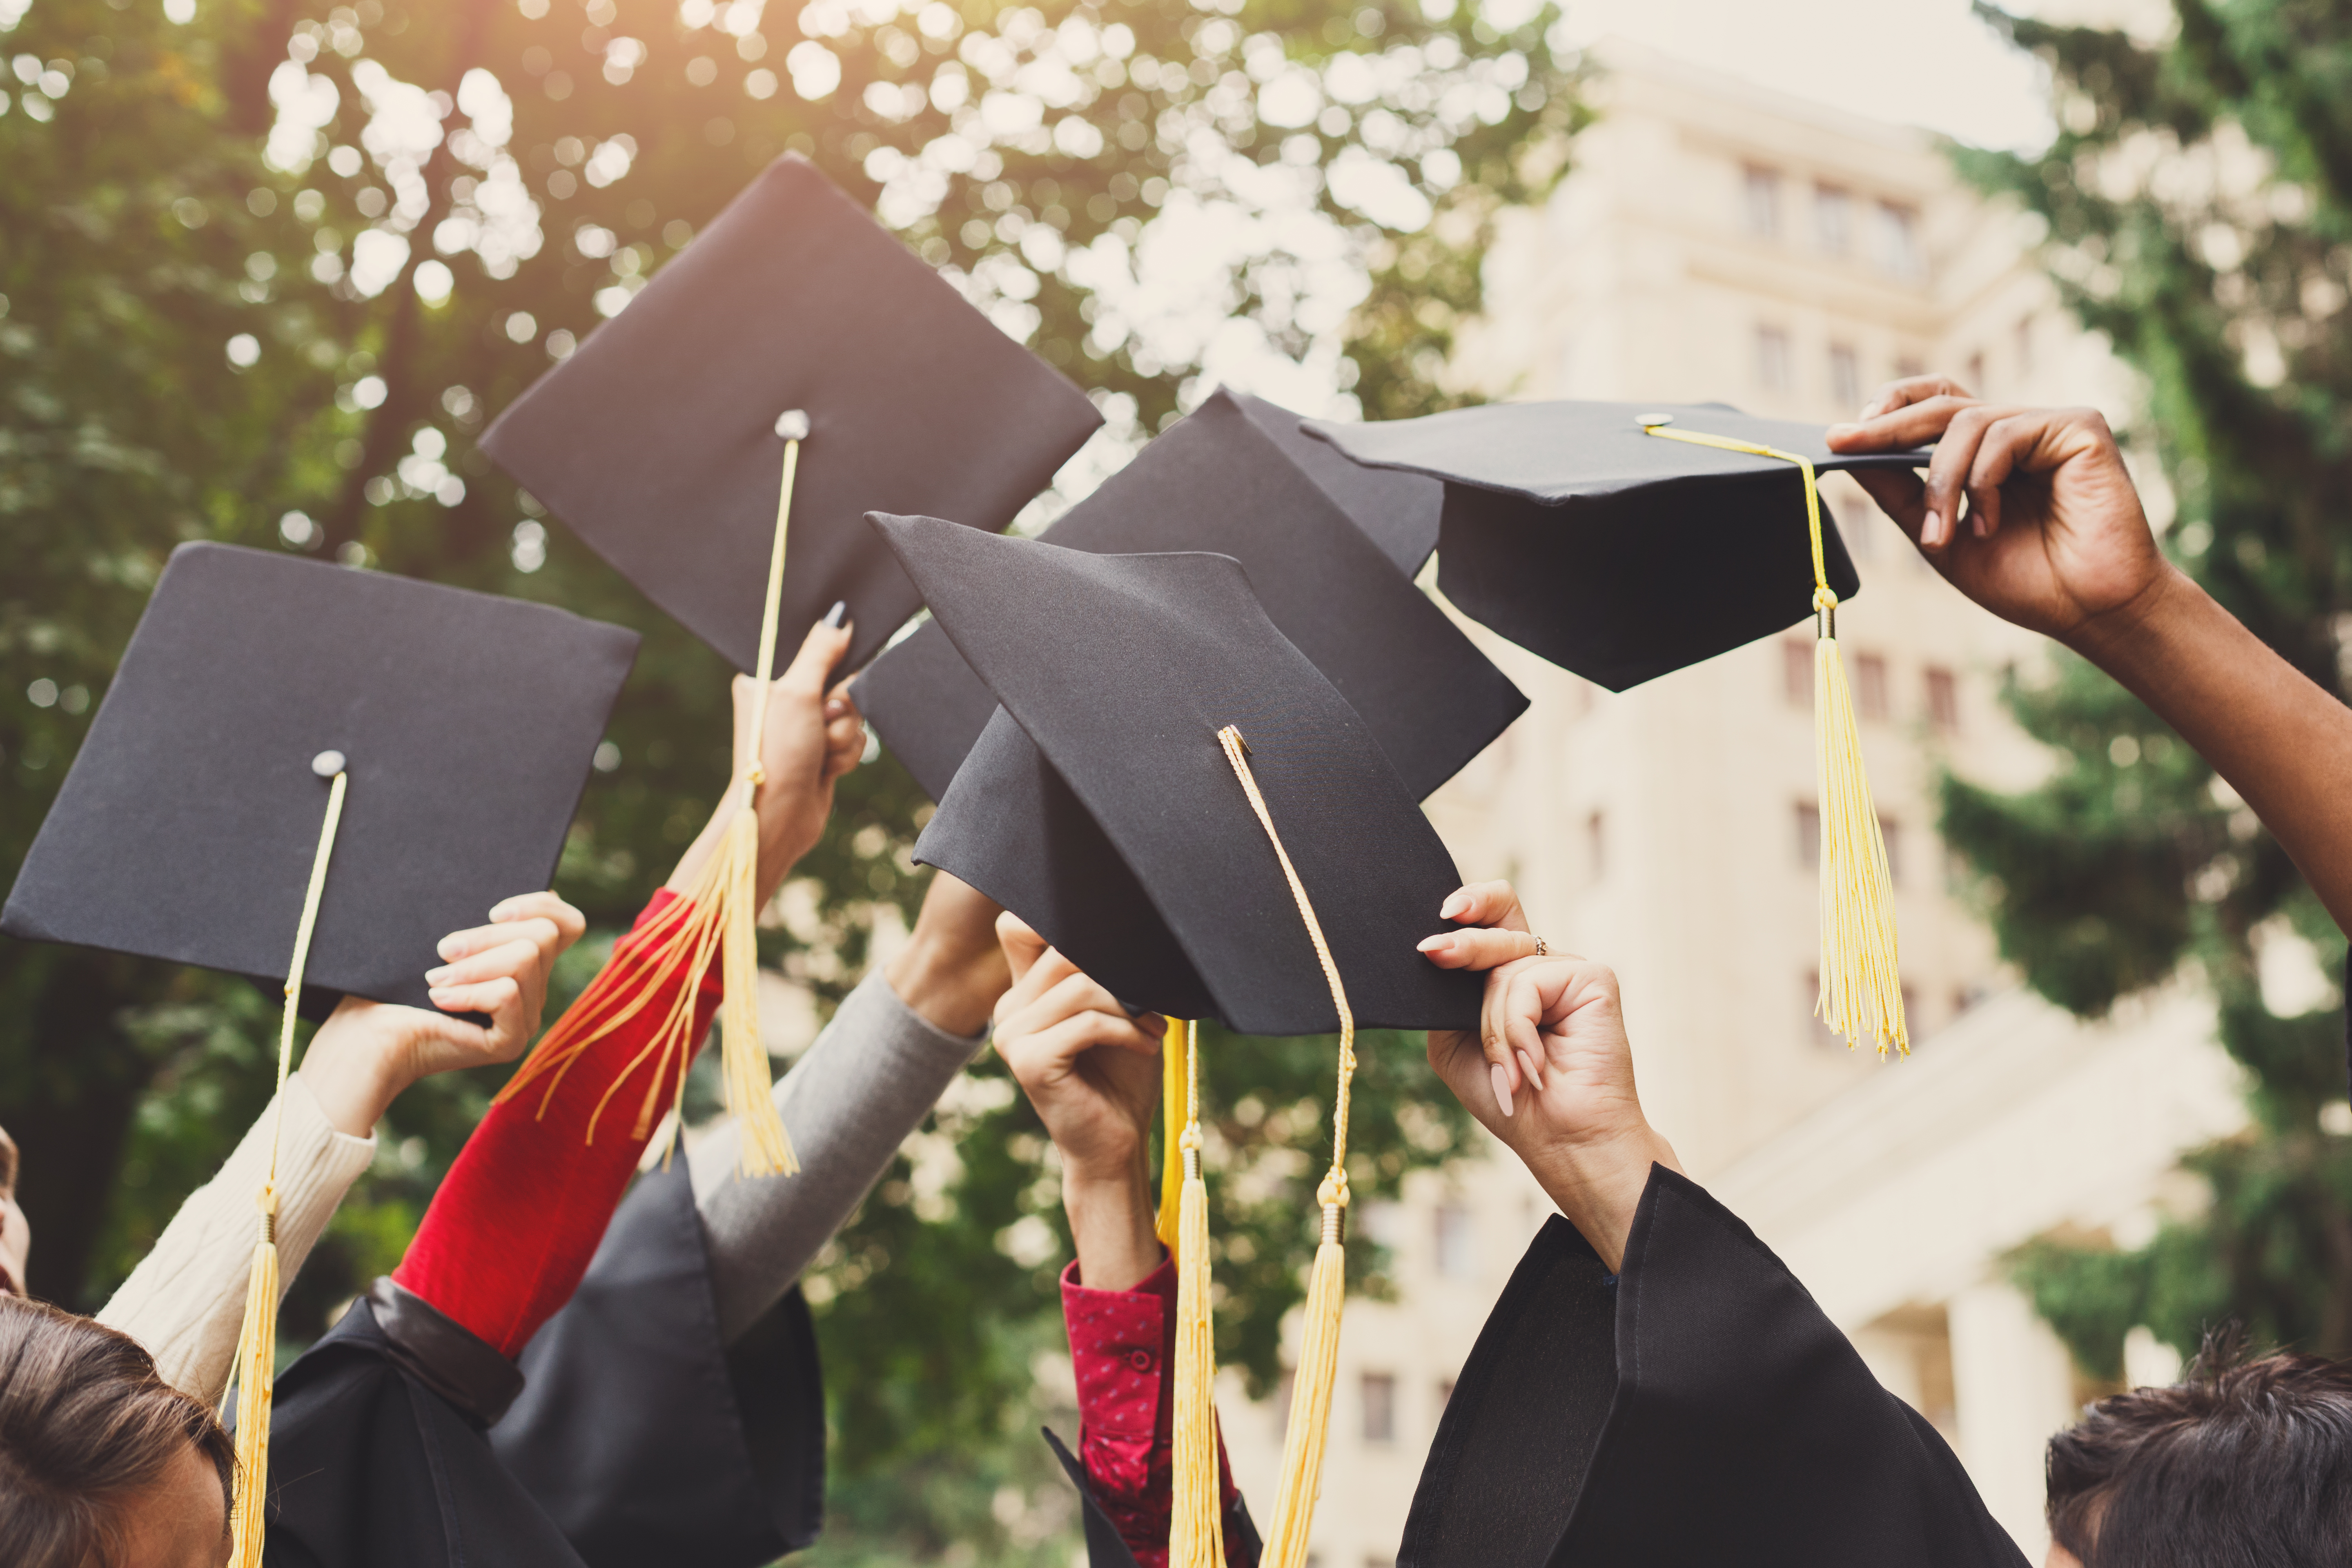 A group of multietnic students celebrating their graduation by throwing caps in the air closeup. Education, qualification and gown concept.